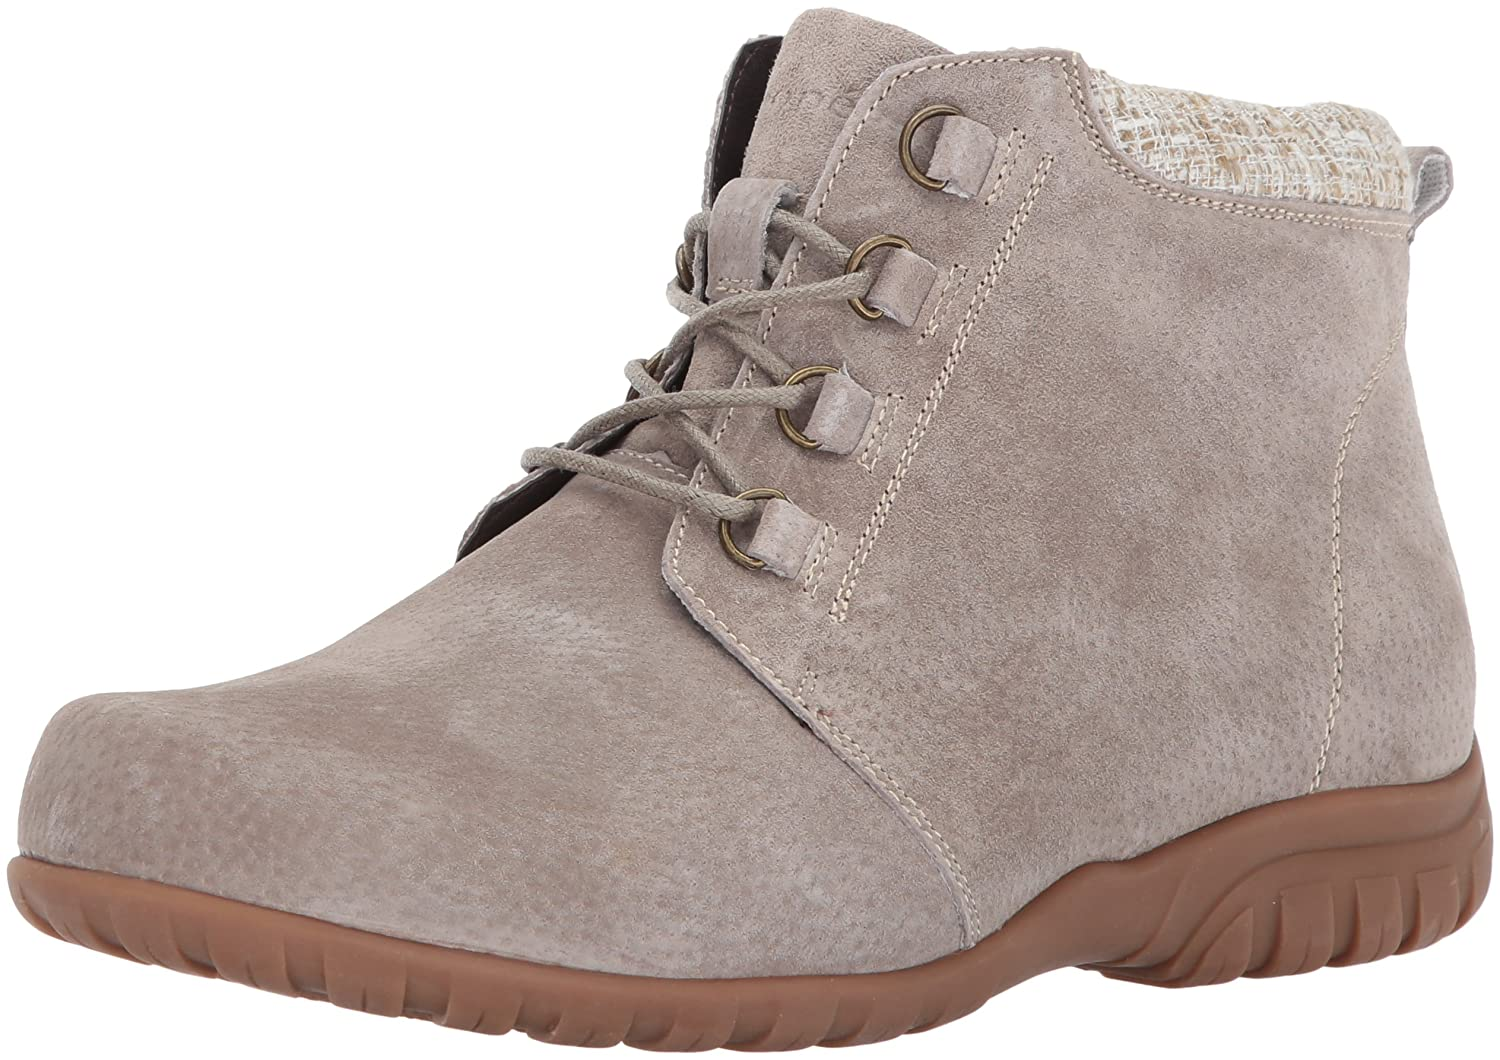 Propet Women's Delaney Ankle Bootie B06XRP22X6 9 B(M) US|Sand